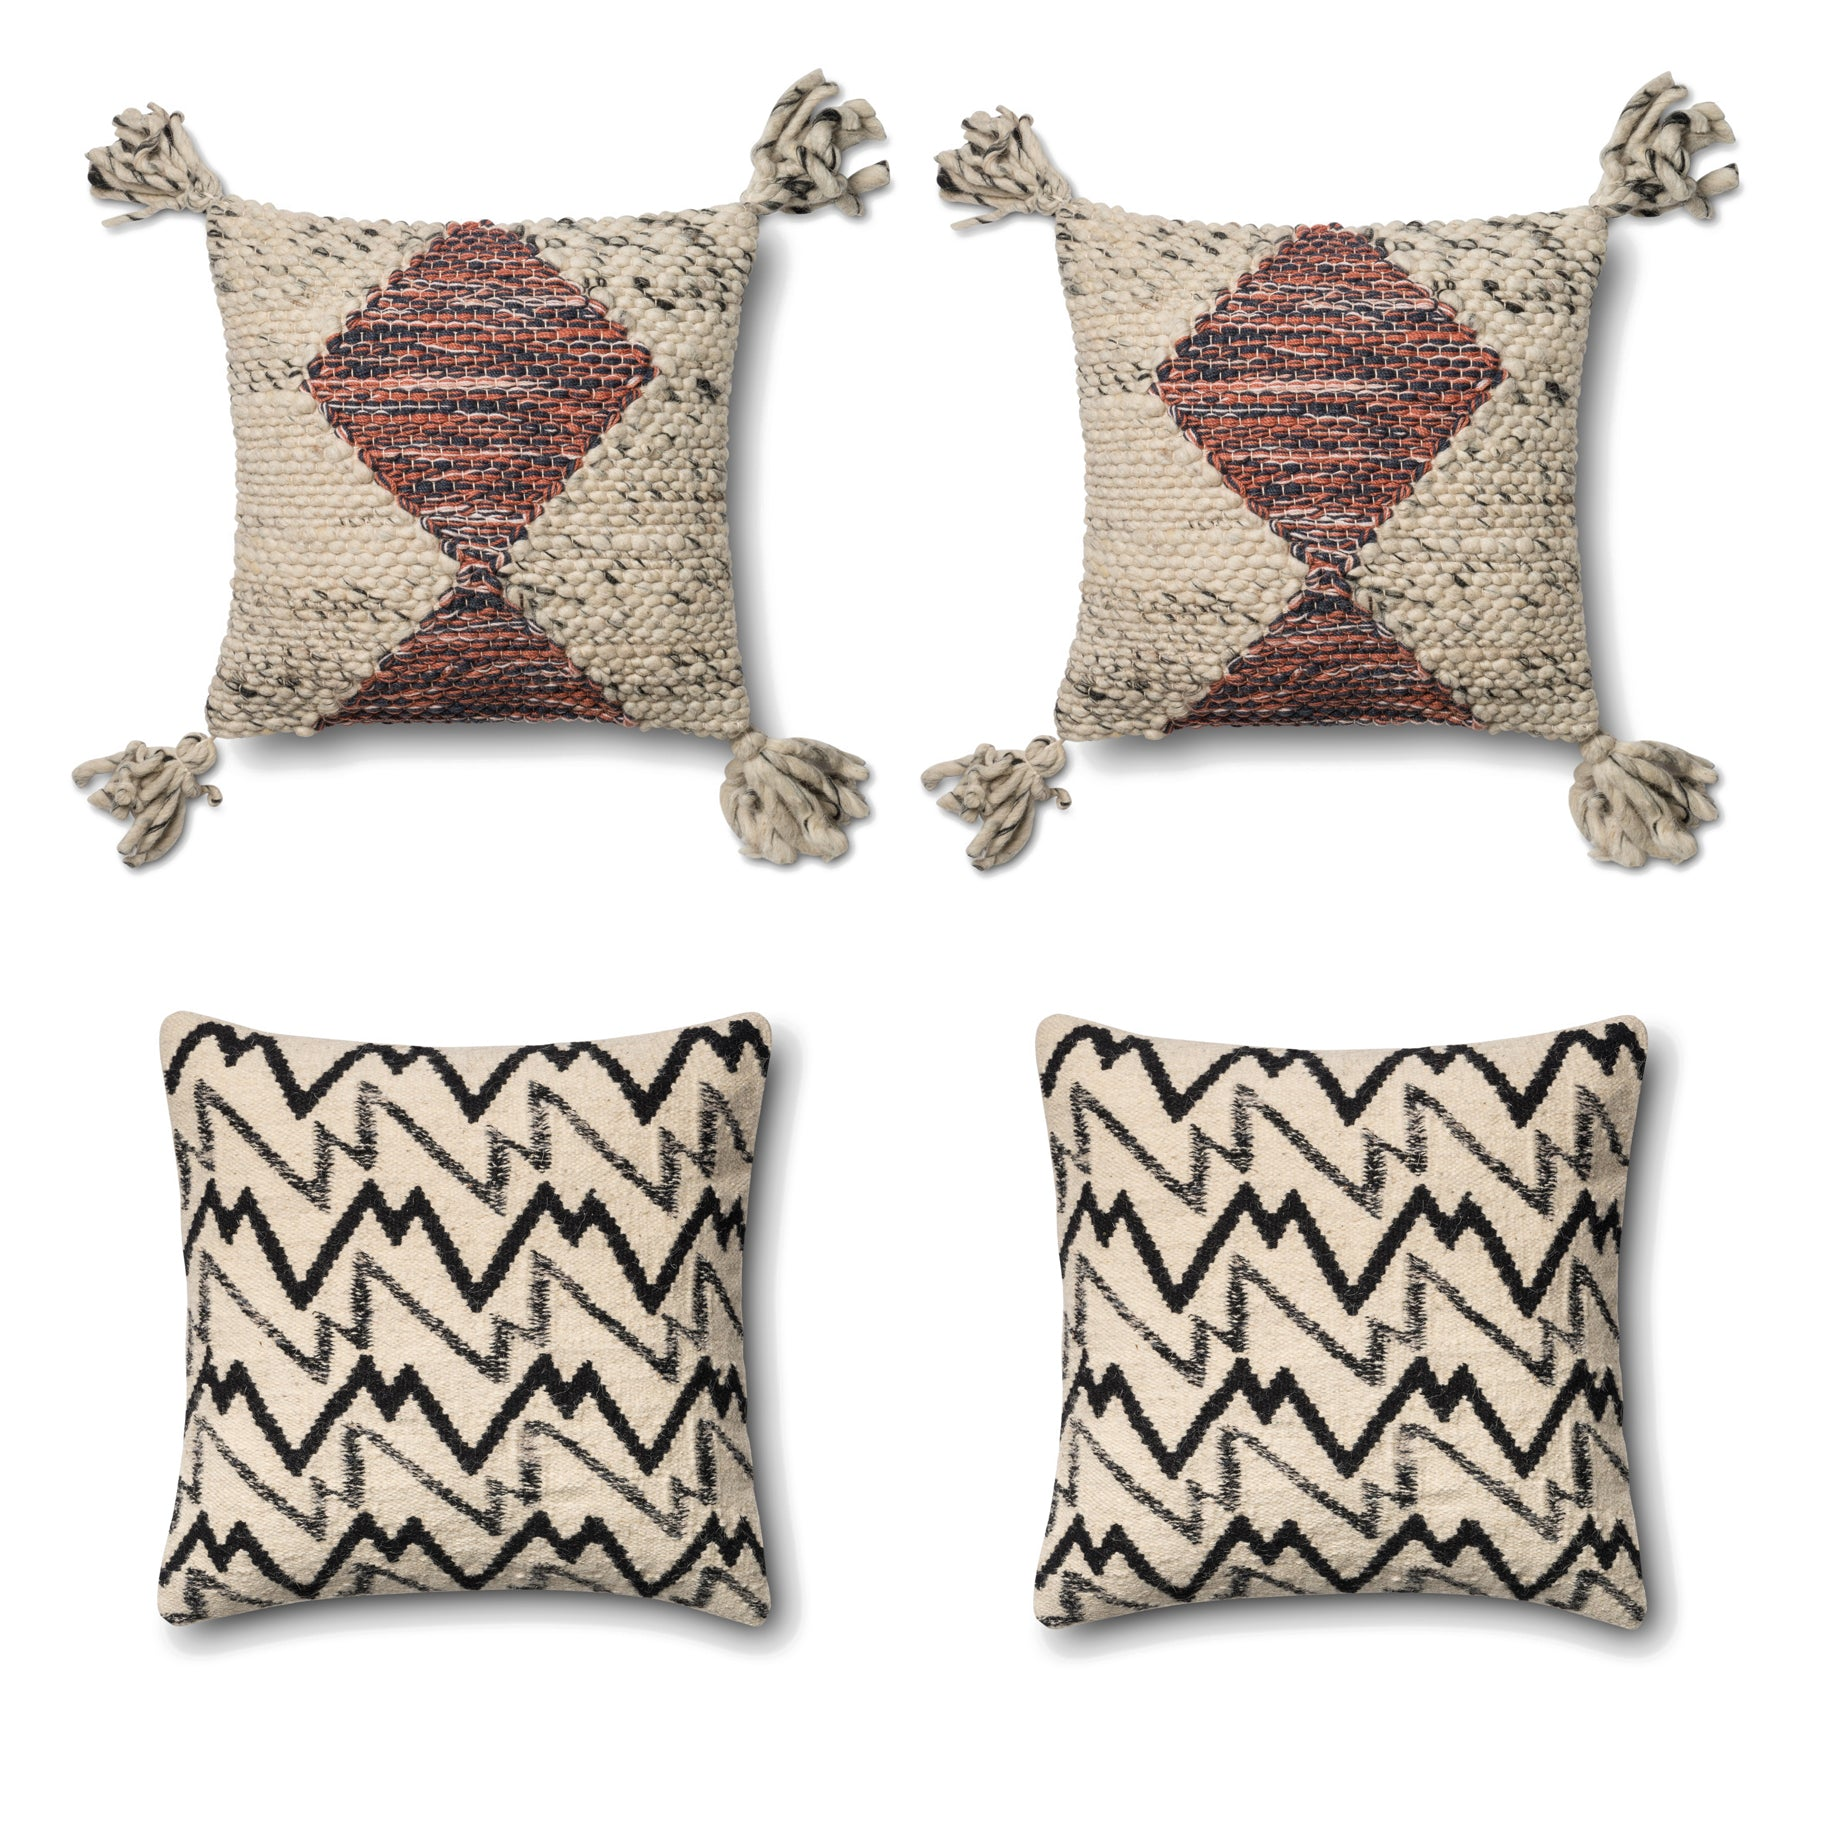 by found decor cover brasstown shawn on pillow lane woven pin at throw pinterest it wayfair birch pillows